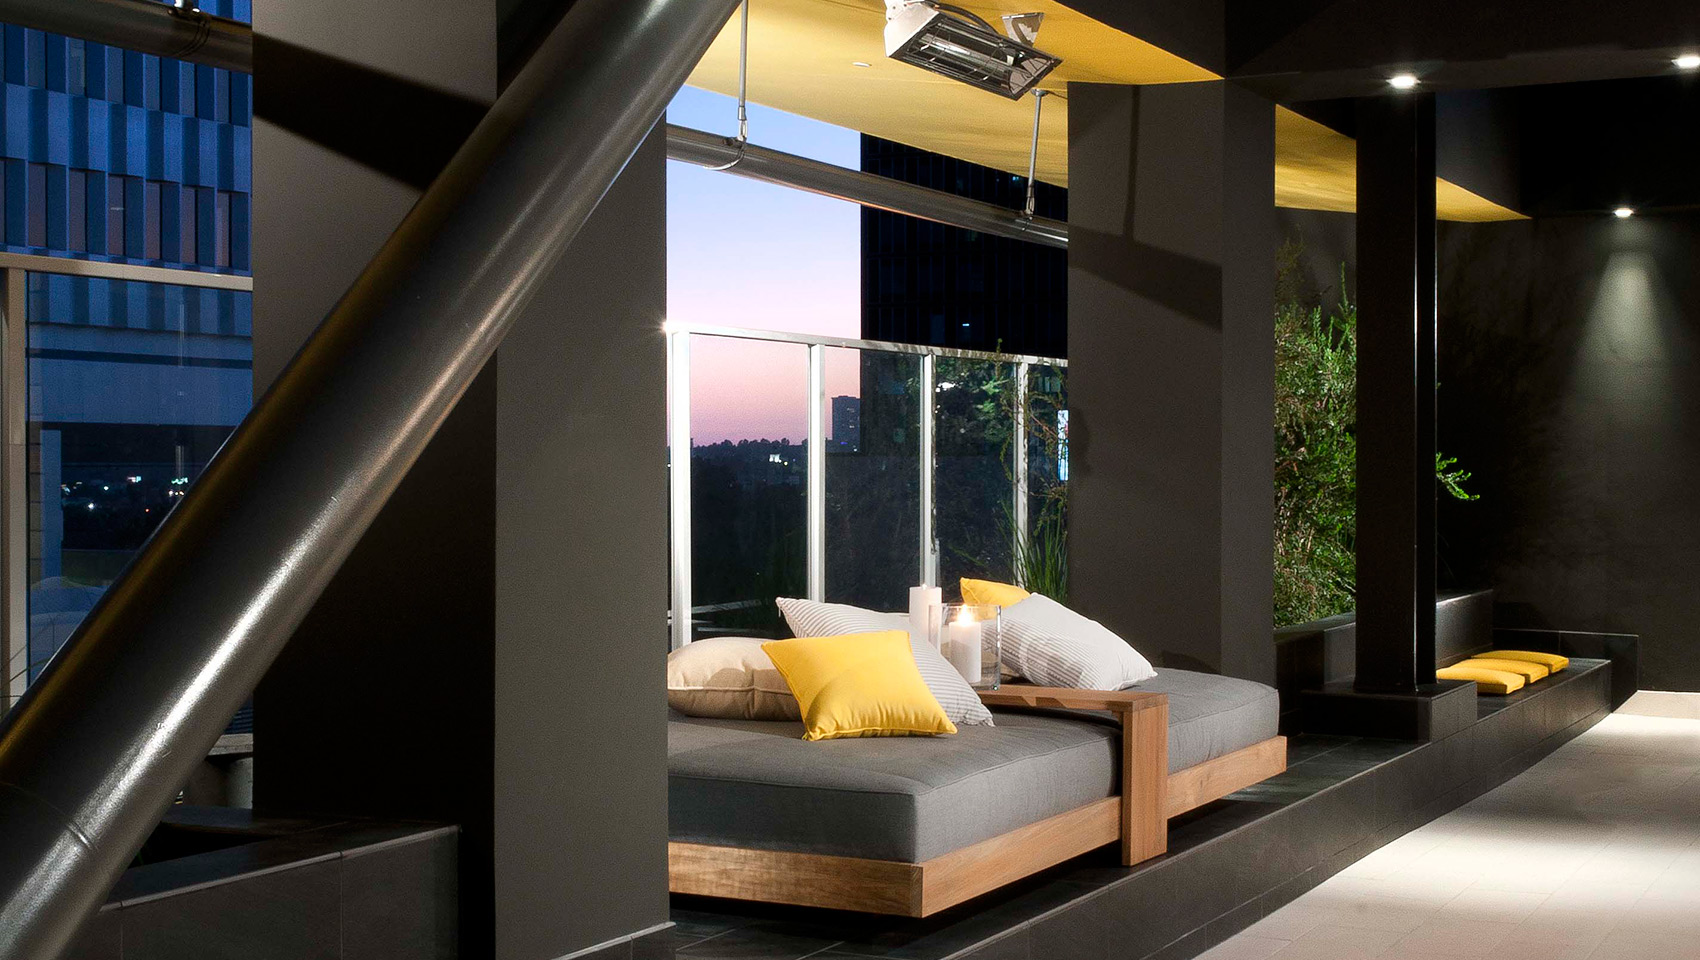 Luxury penthouses in los angeles according to developer for Penthouse apartment los angeles